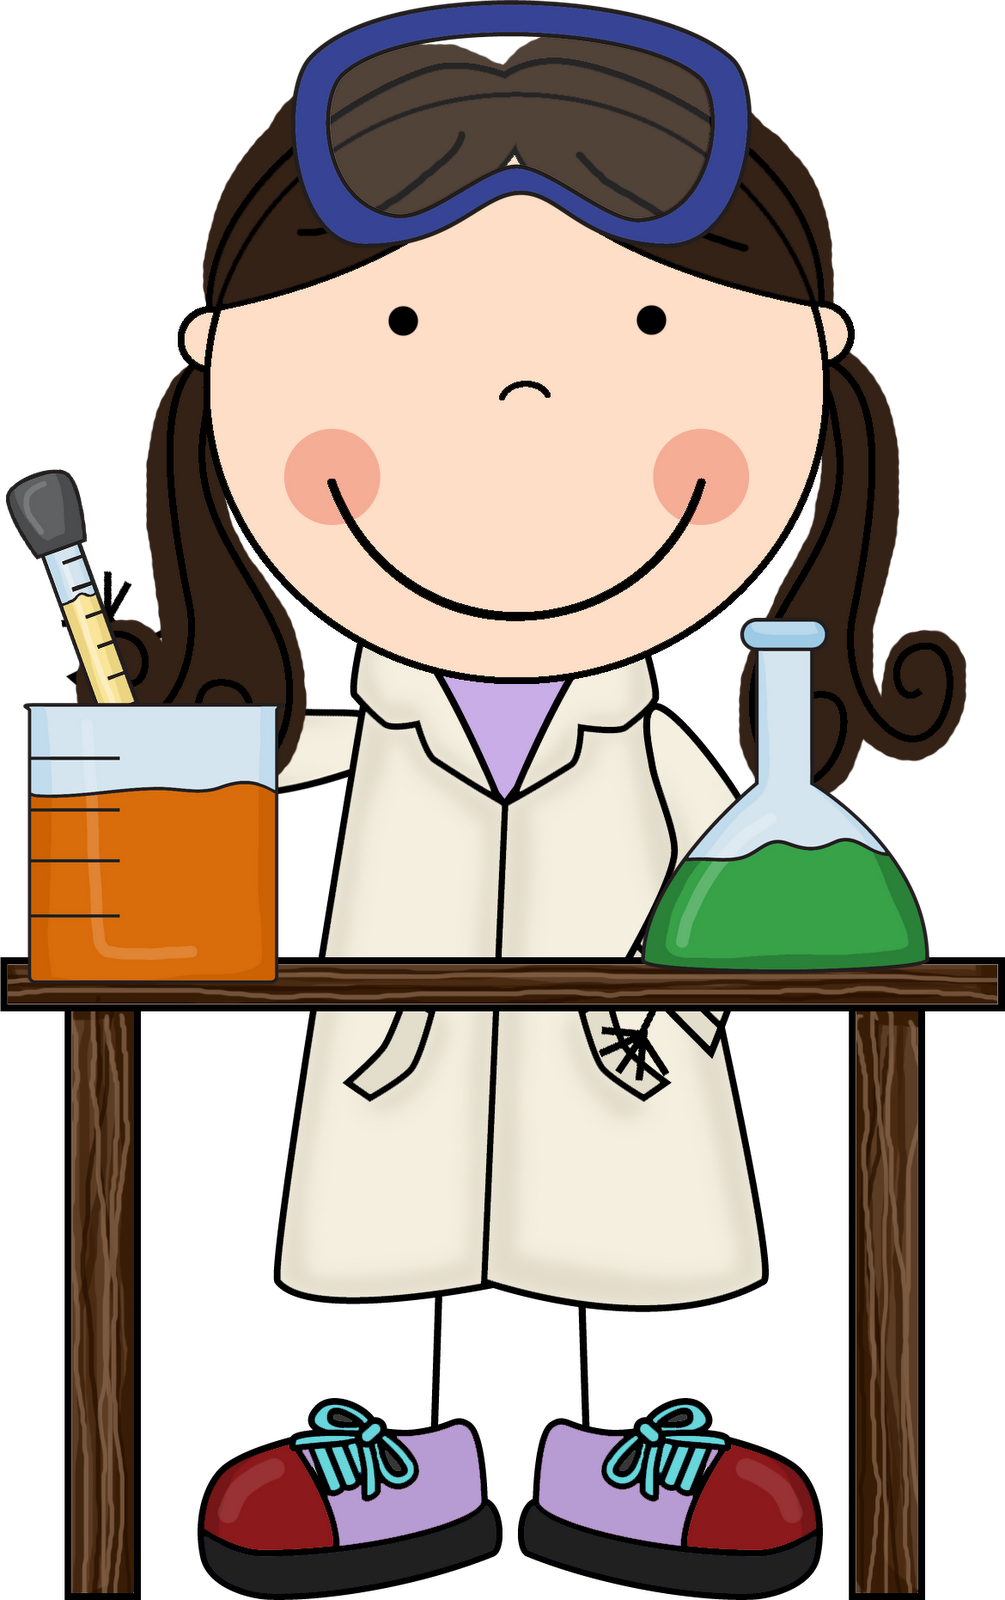 Collaboration clipart science conclusion. Cliparthot of scientists and